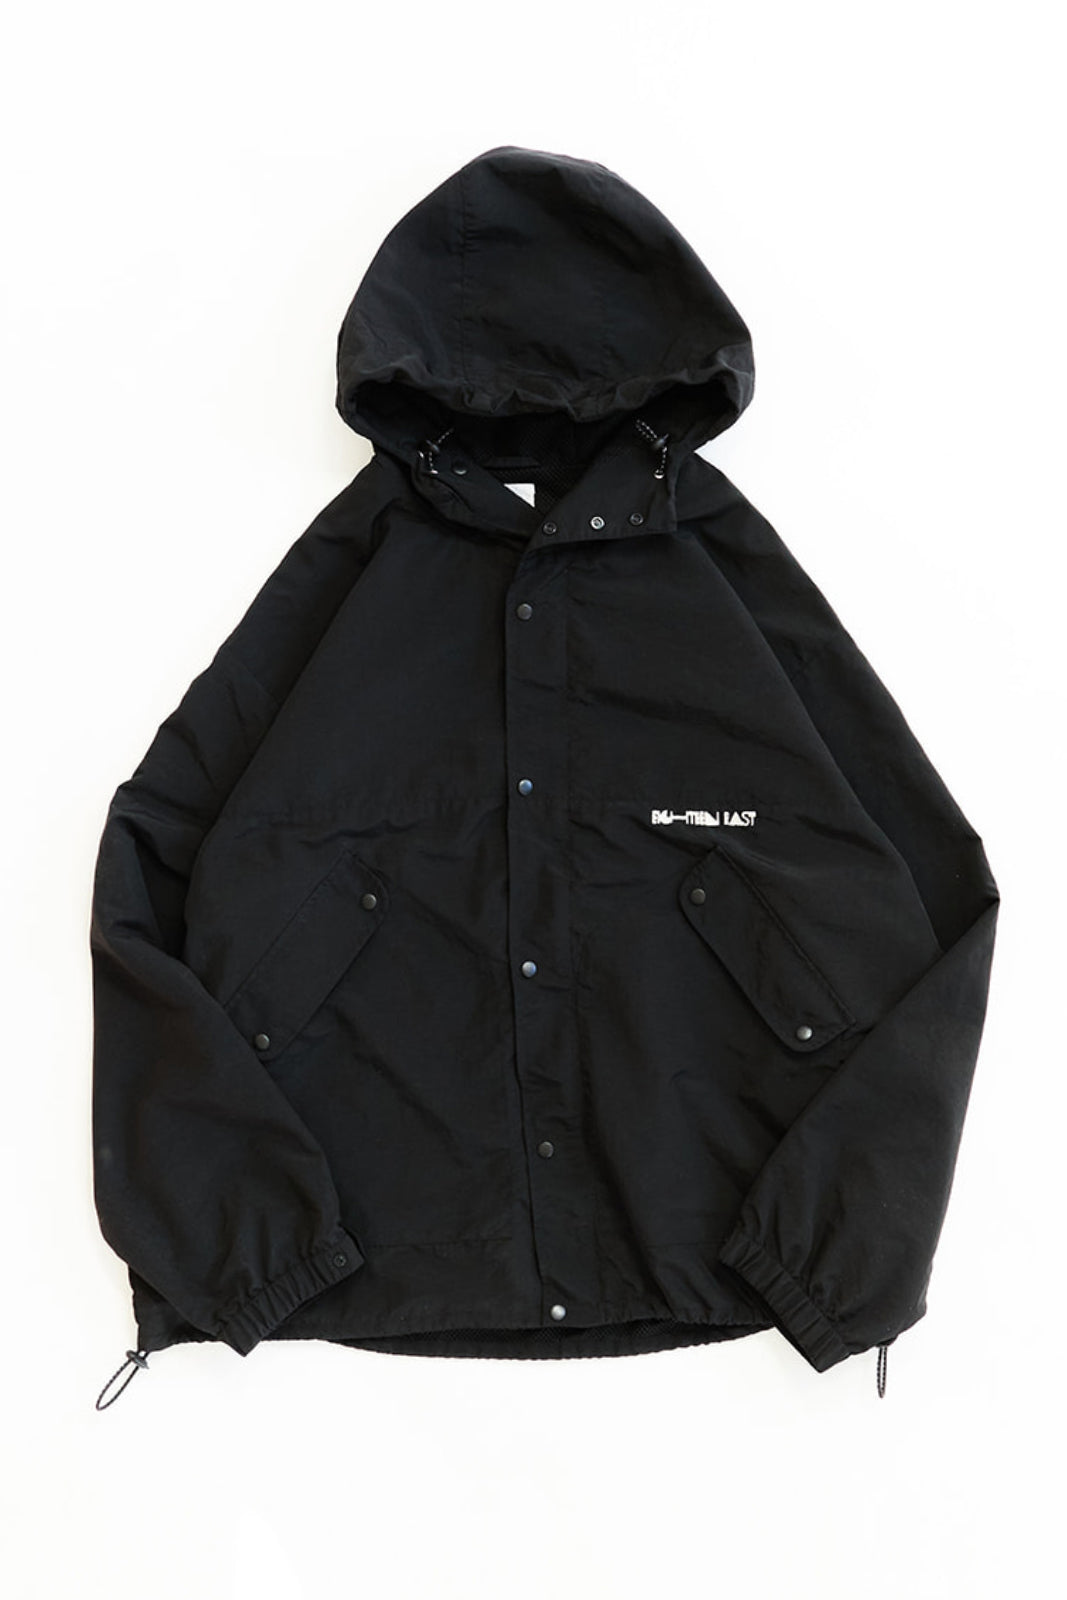 WATERFRONT HOODED SHELL - BLACK TASLAN